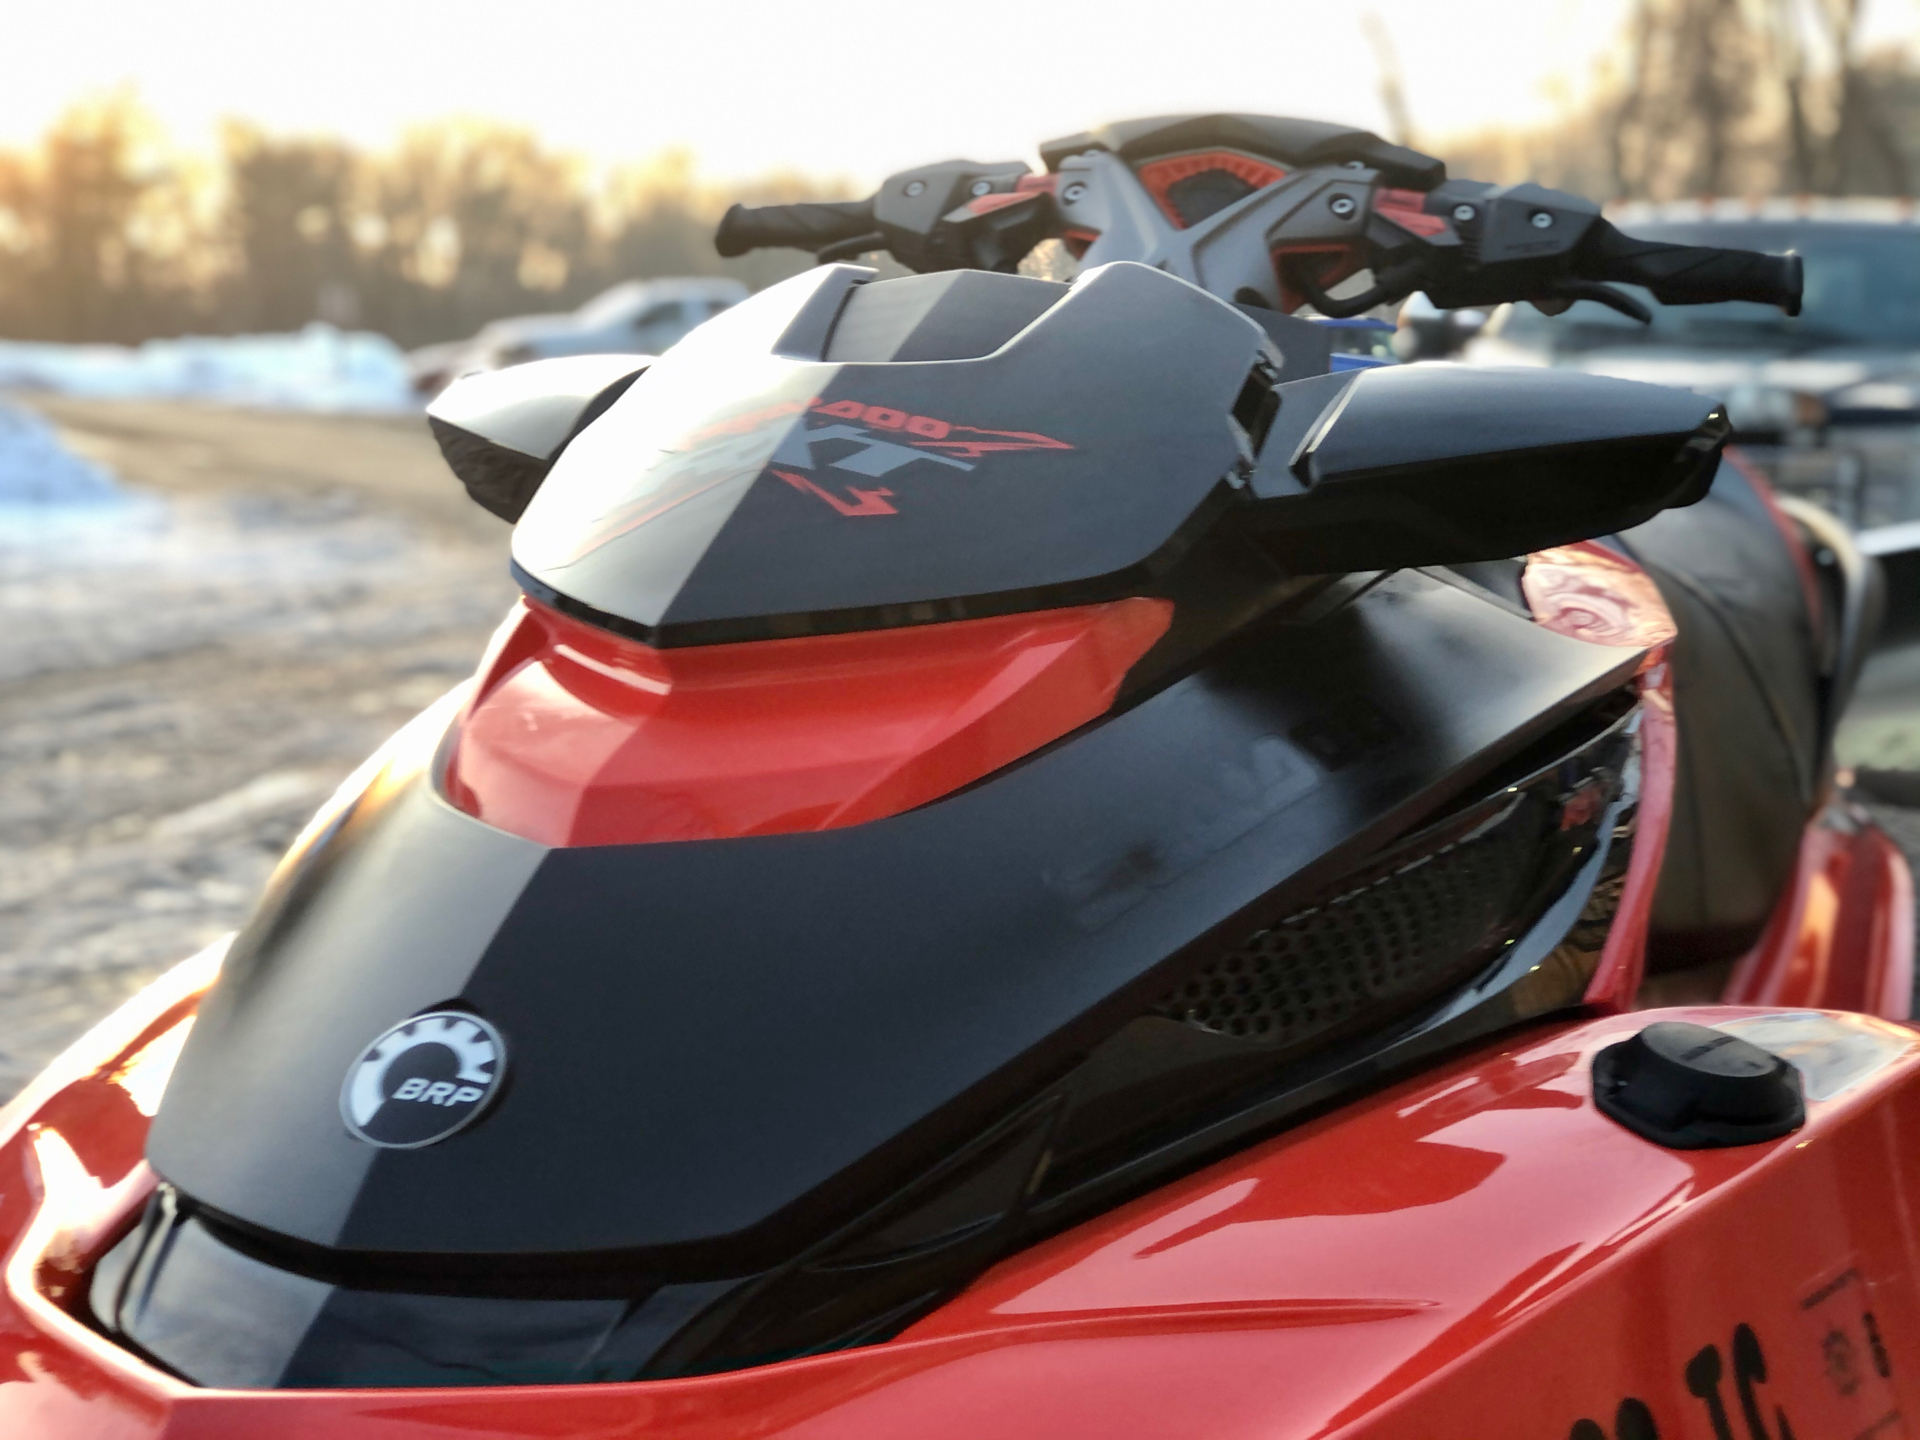 2016 Sea-Doo RXT-X 300 in Enfield, Connecticut - Photo 7